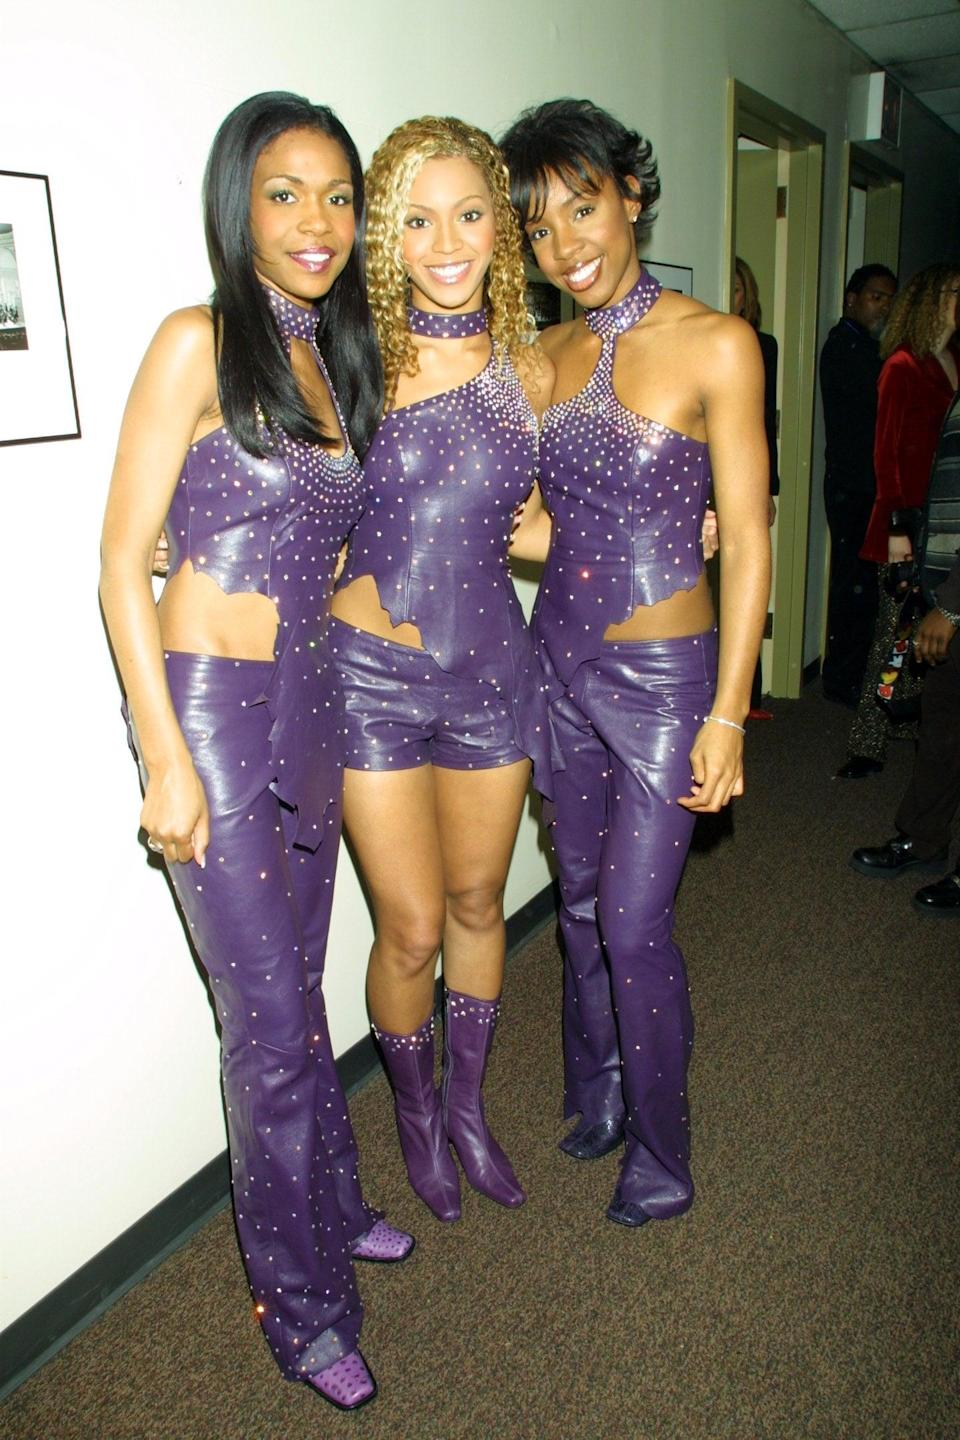 <p>Who knew purple and leather could look so good? Here they are at an event in 2001. </p>